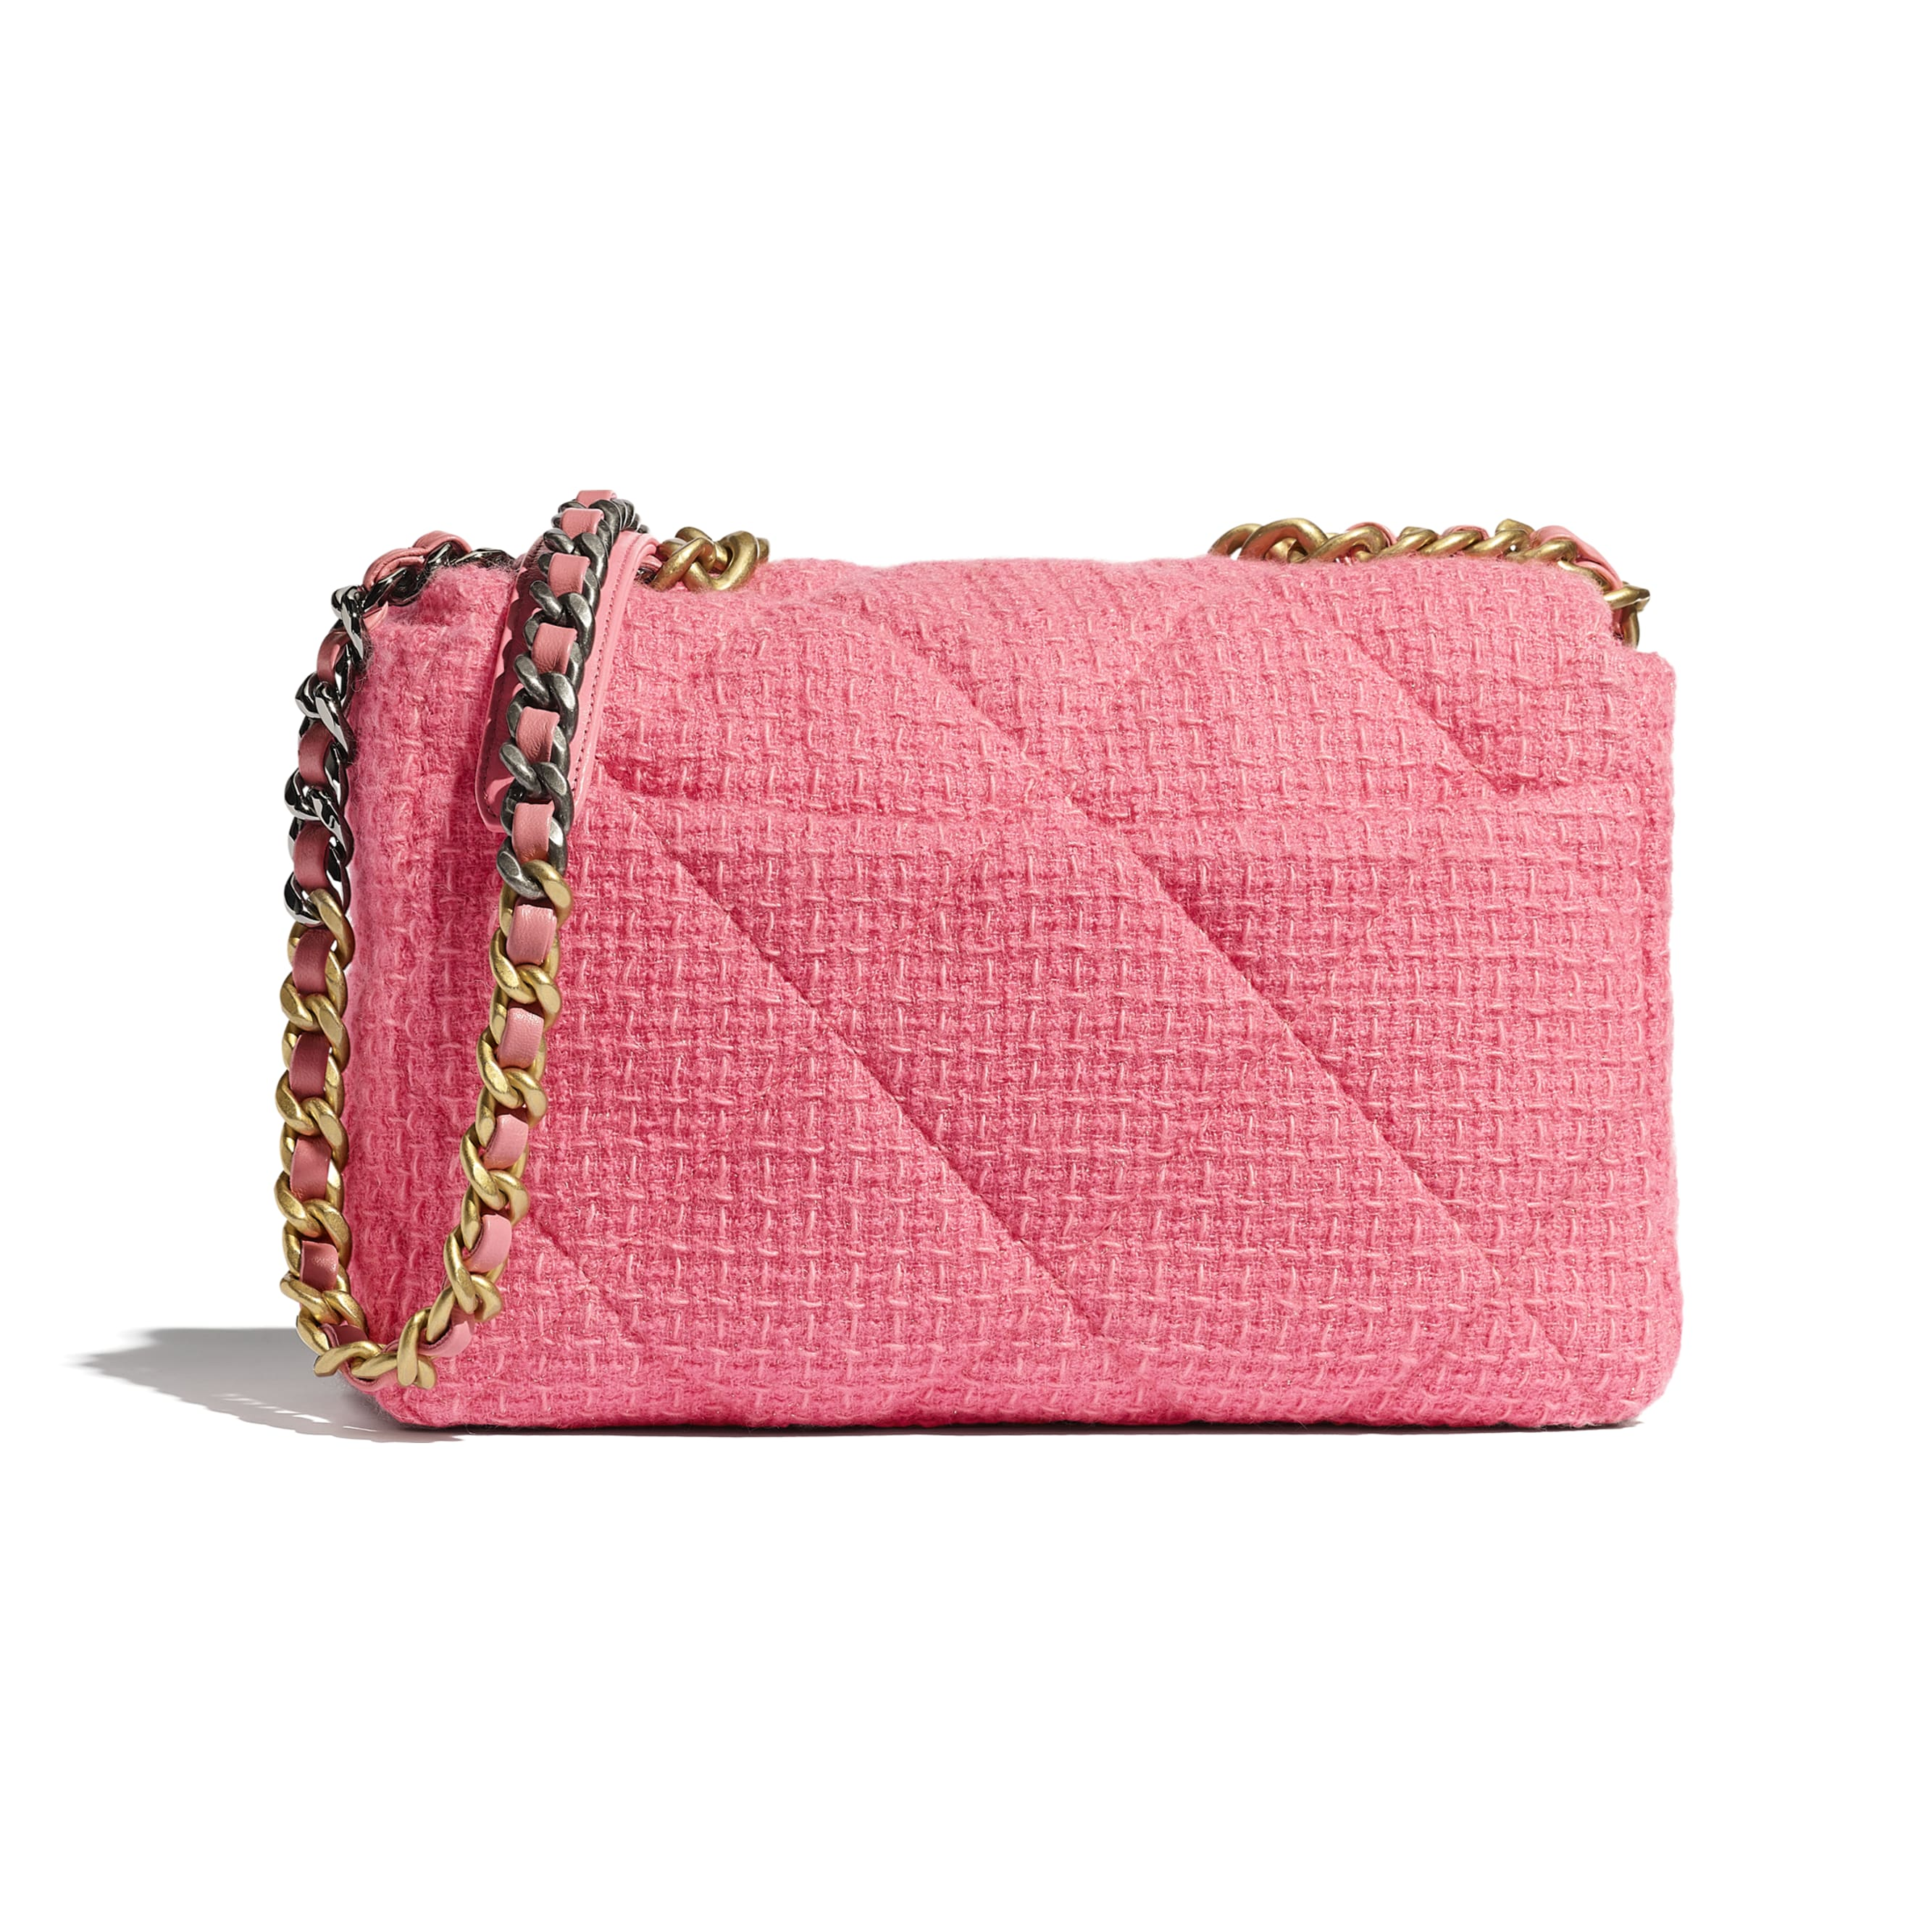 CHANEL 19 Large Flap Bag - Pink - Wool Tweed, Gold-Tone, Silver-Tone & Ruthenium-Finish Metal - CHANEL - Alternative view - see standard sized version